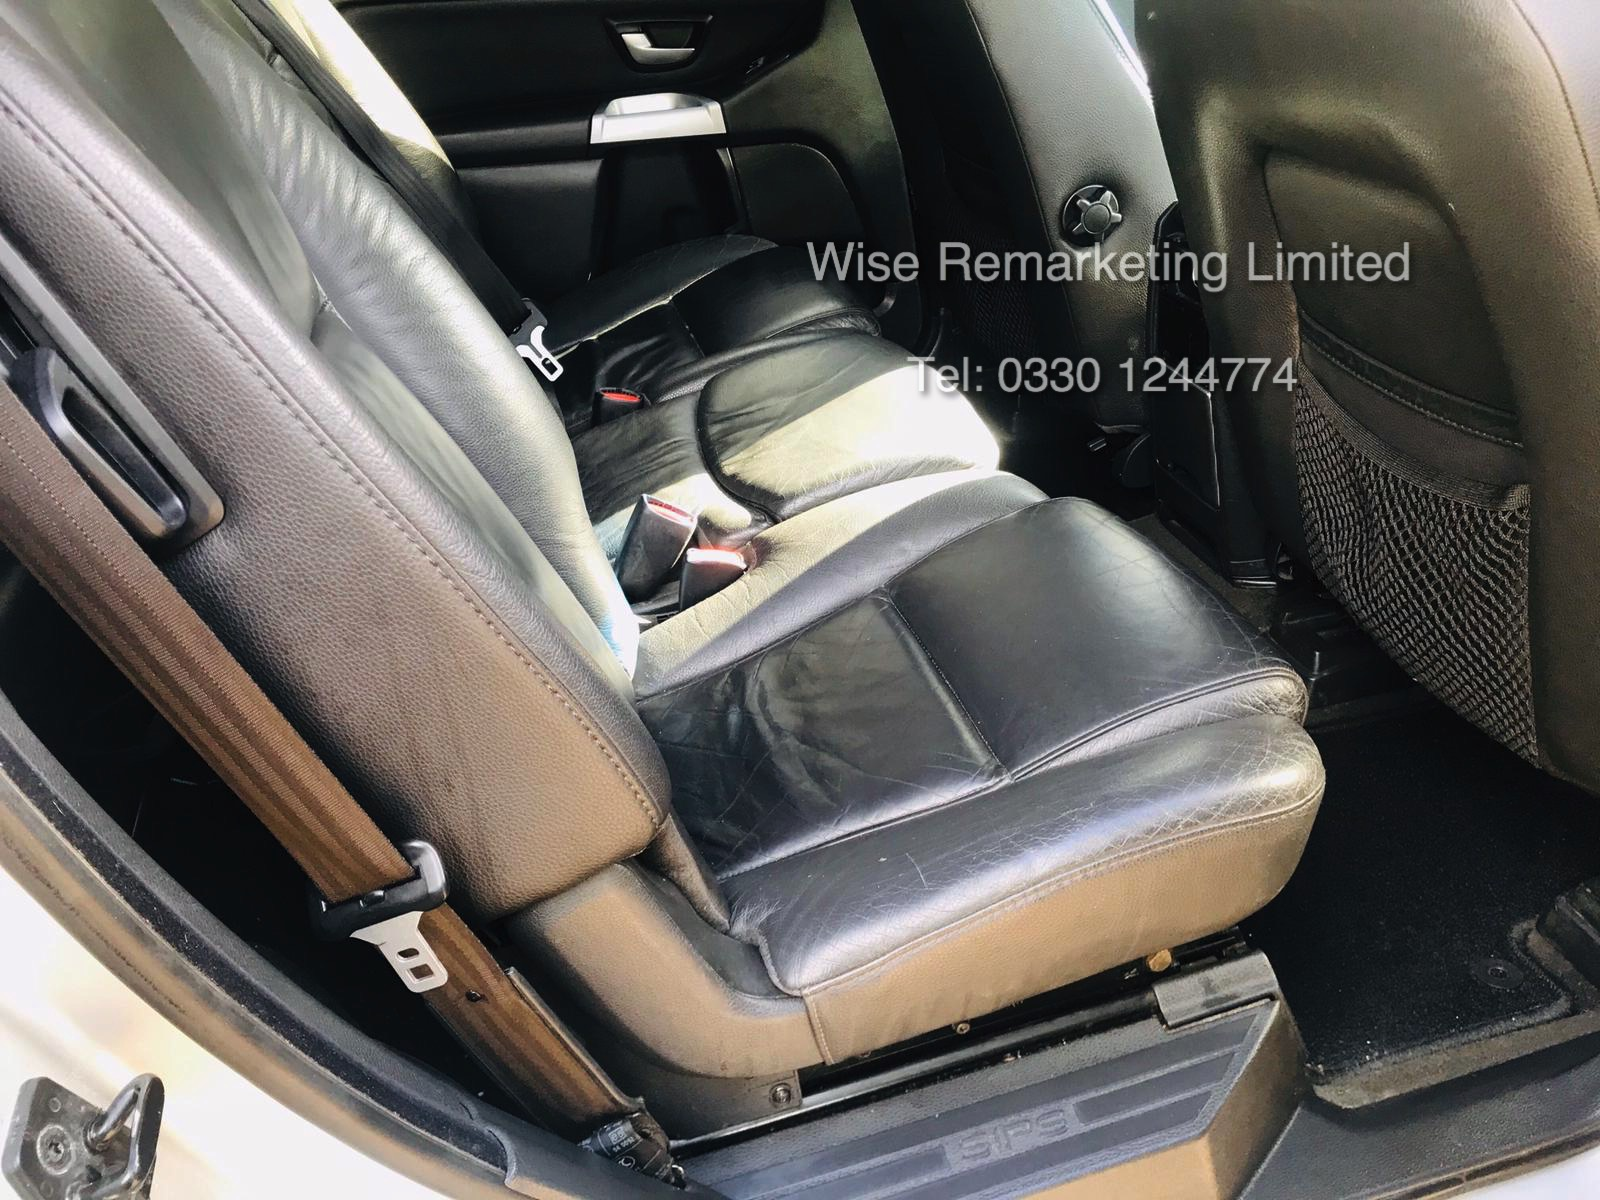 Volvo XC90 2.4 D5 Special Equipment Geartronic - 2006 06 Reg - Service History - 7 Seats - Sat Nav - Image 11 of 27